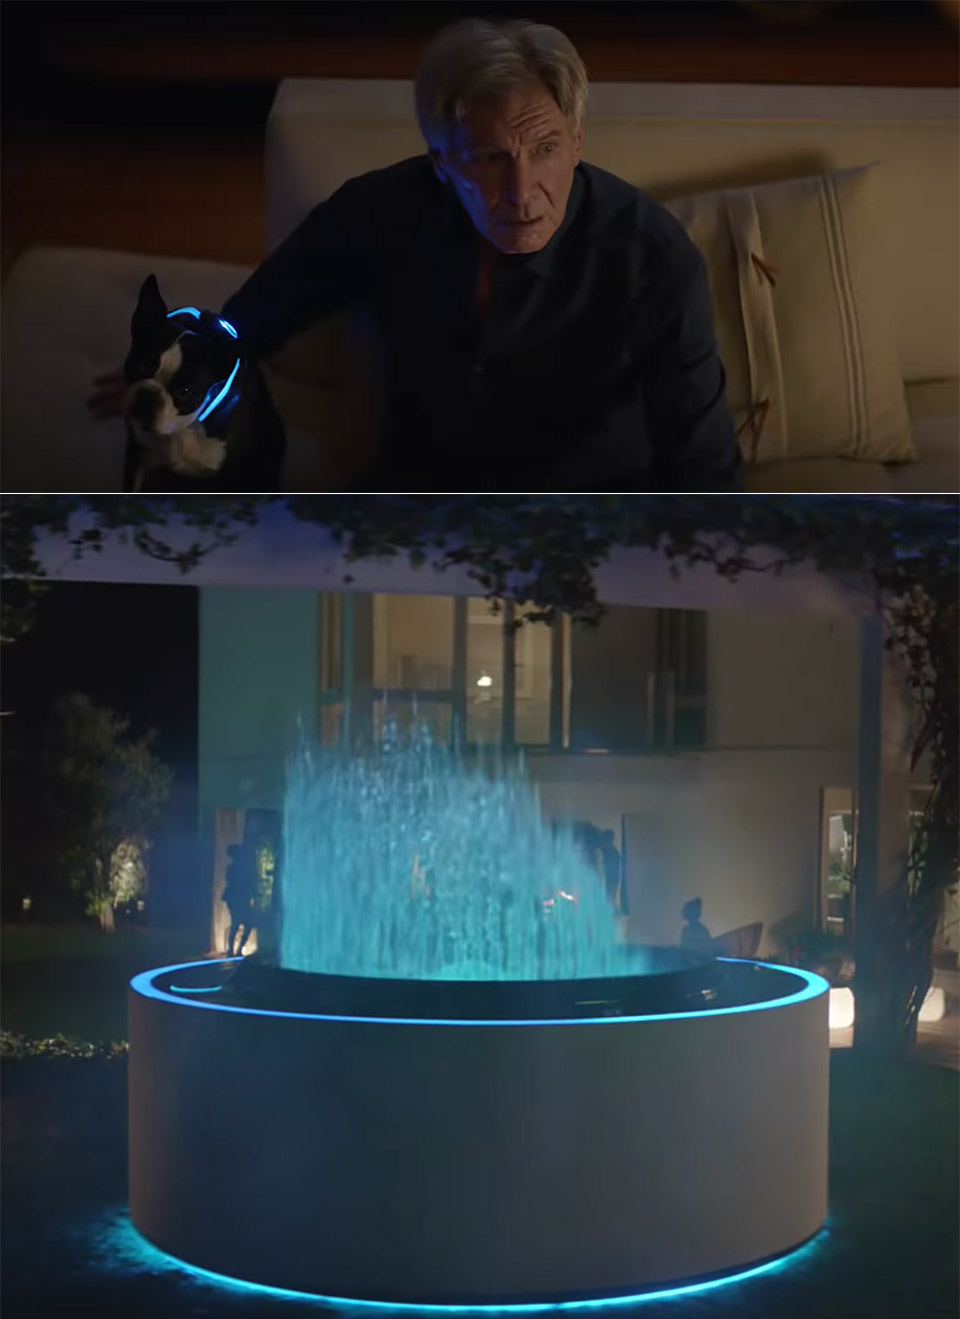 Amazon Super Bowl Harrison Ford Alexa